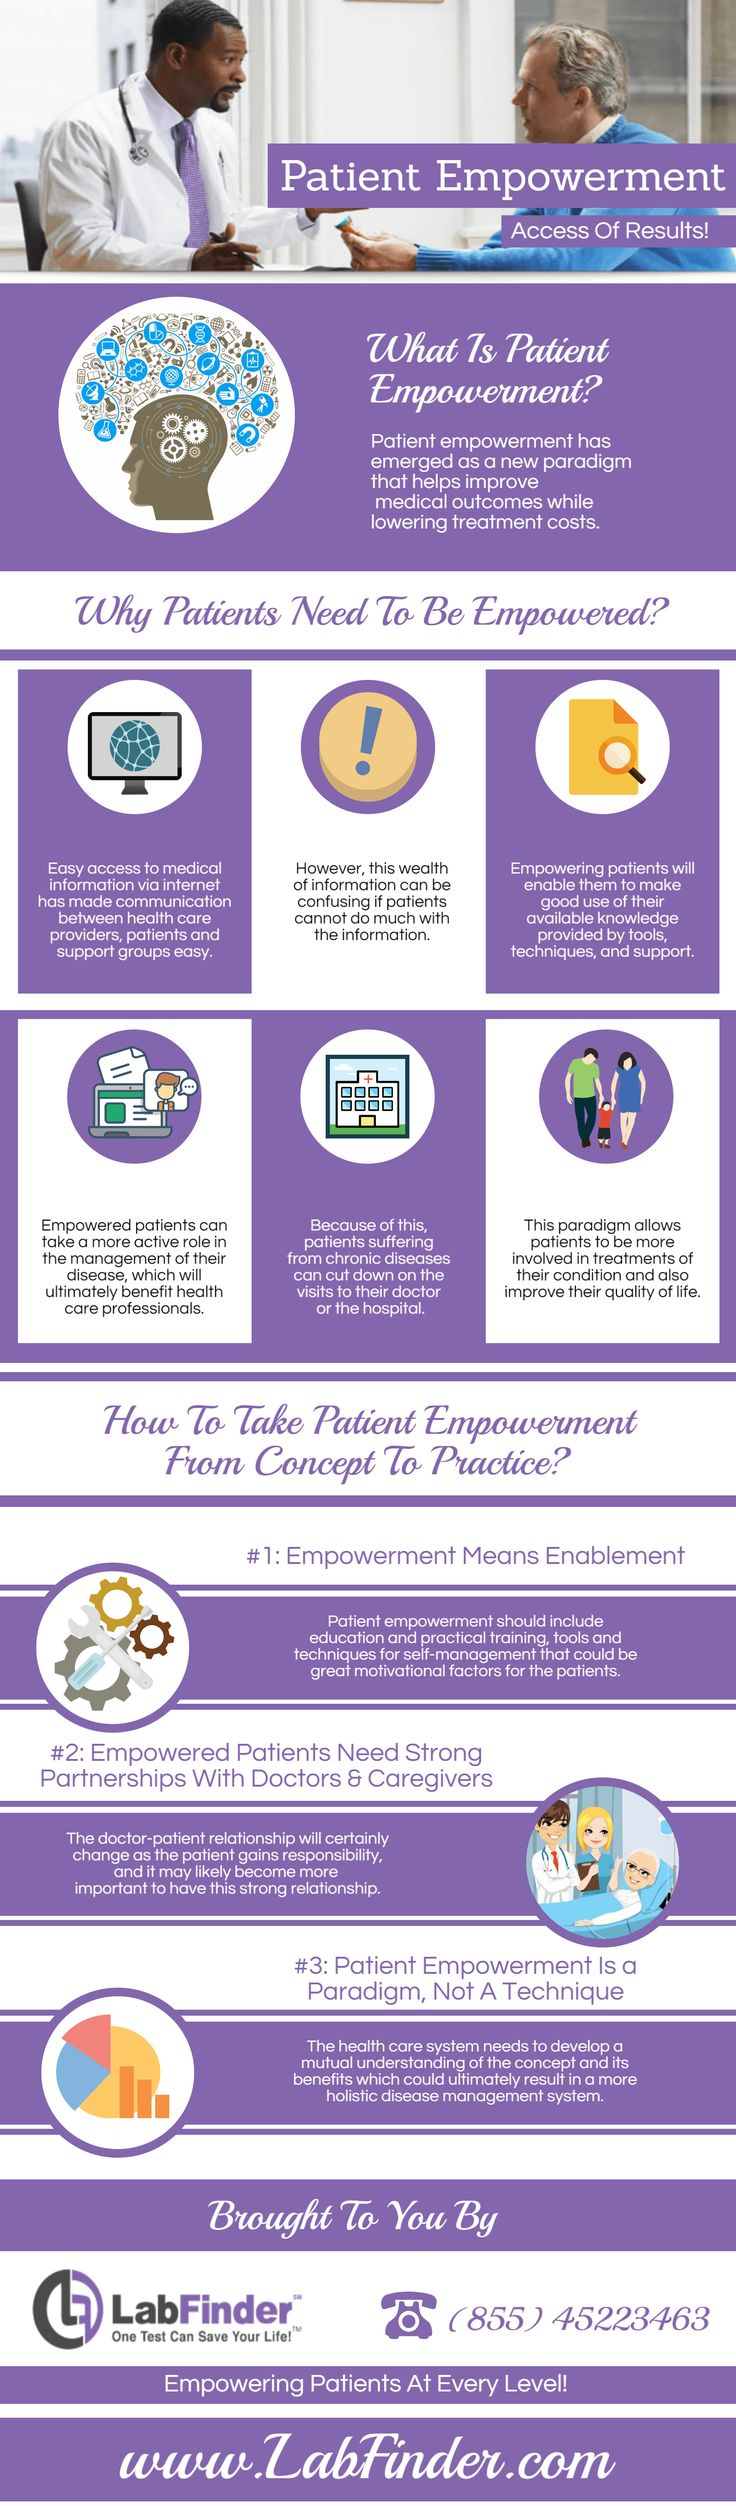 Patient Empowerment Infographic   The Healthcare Marketer